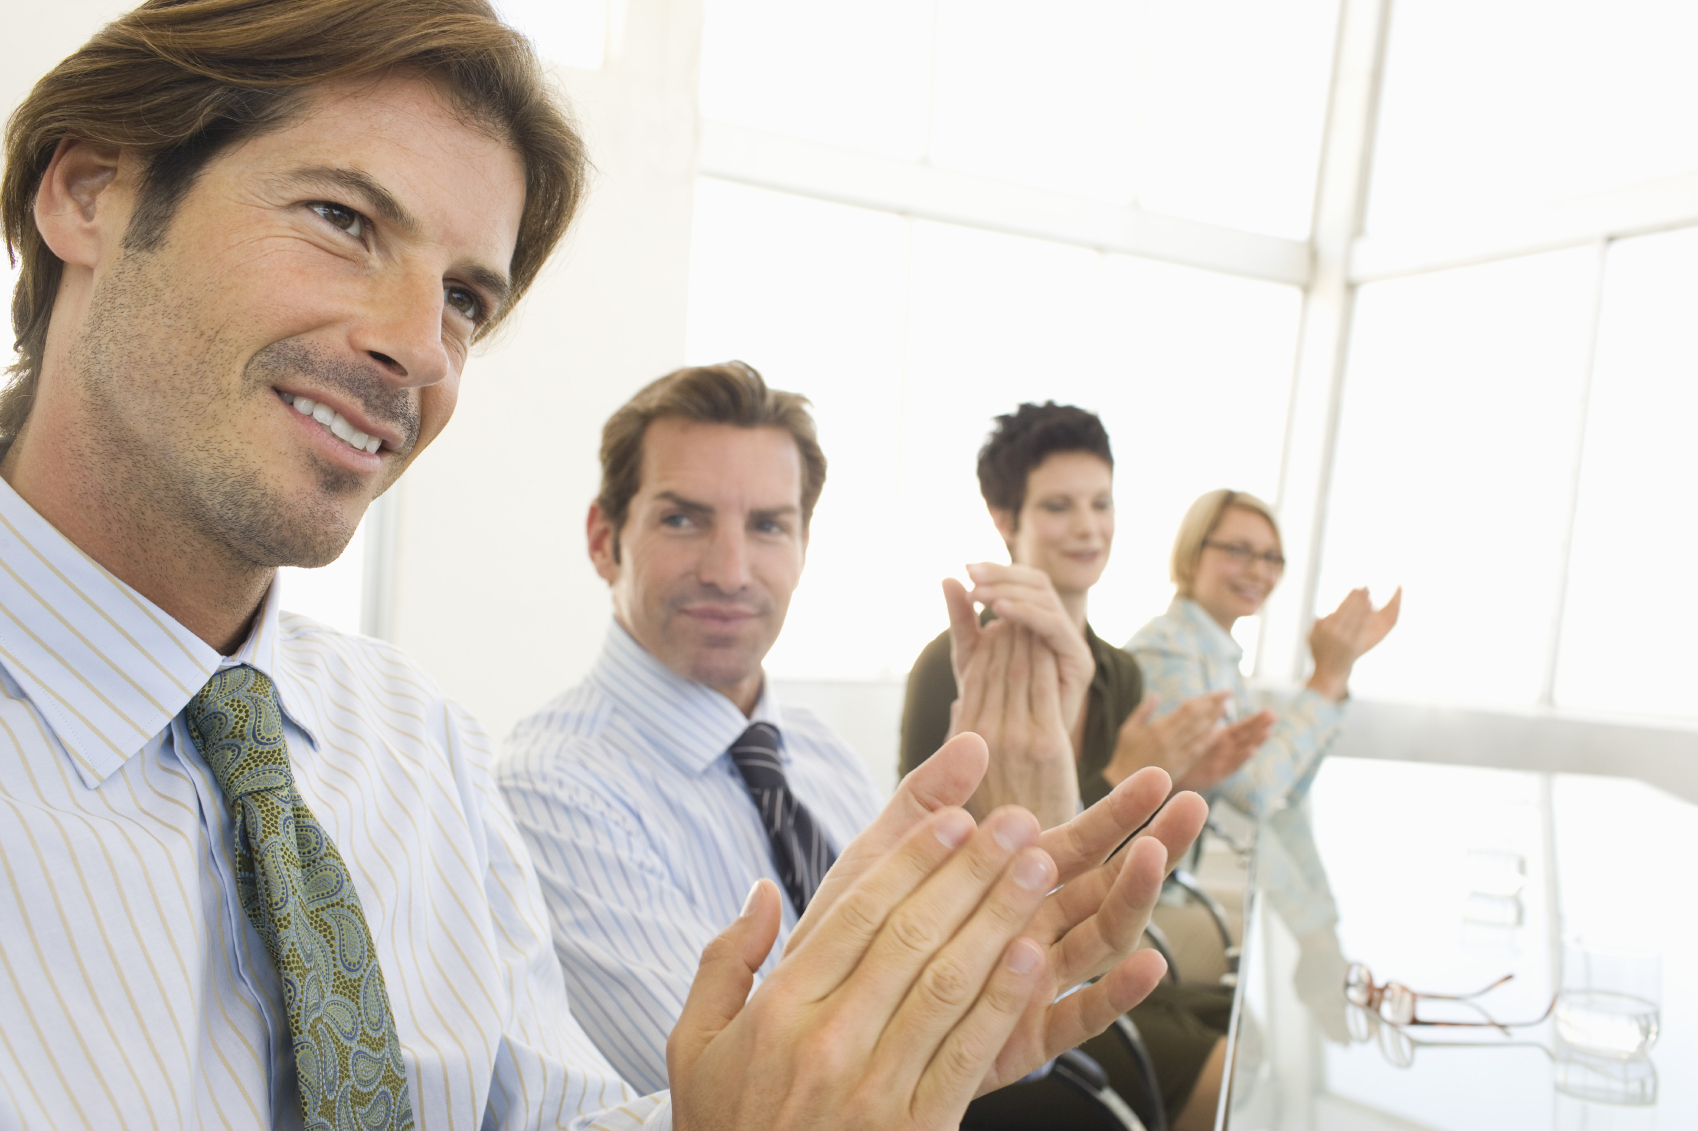 Business Colleagues Applauding In Conference Room